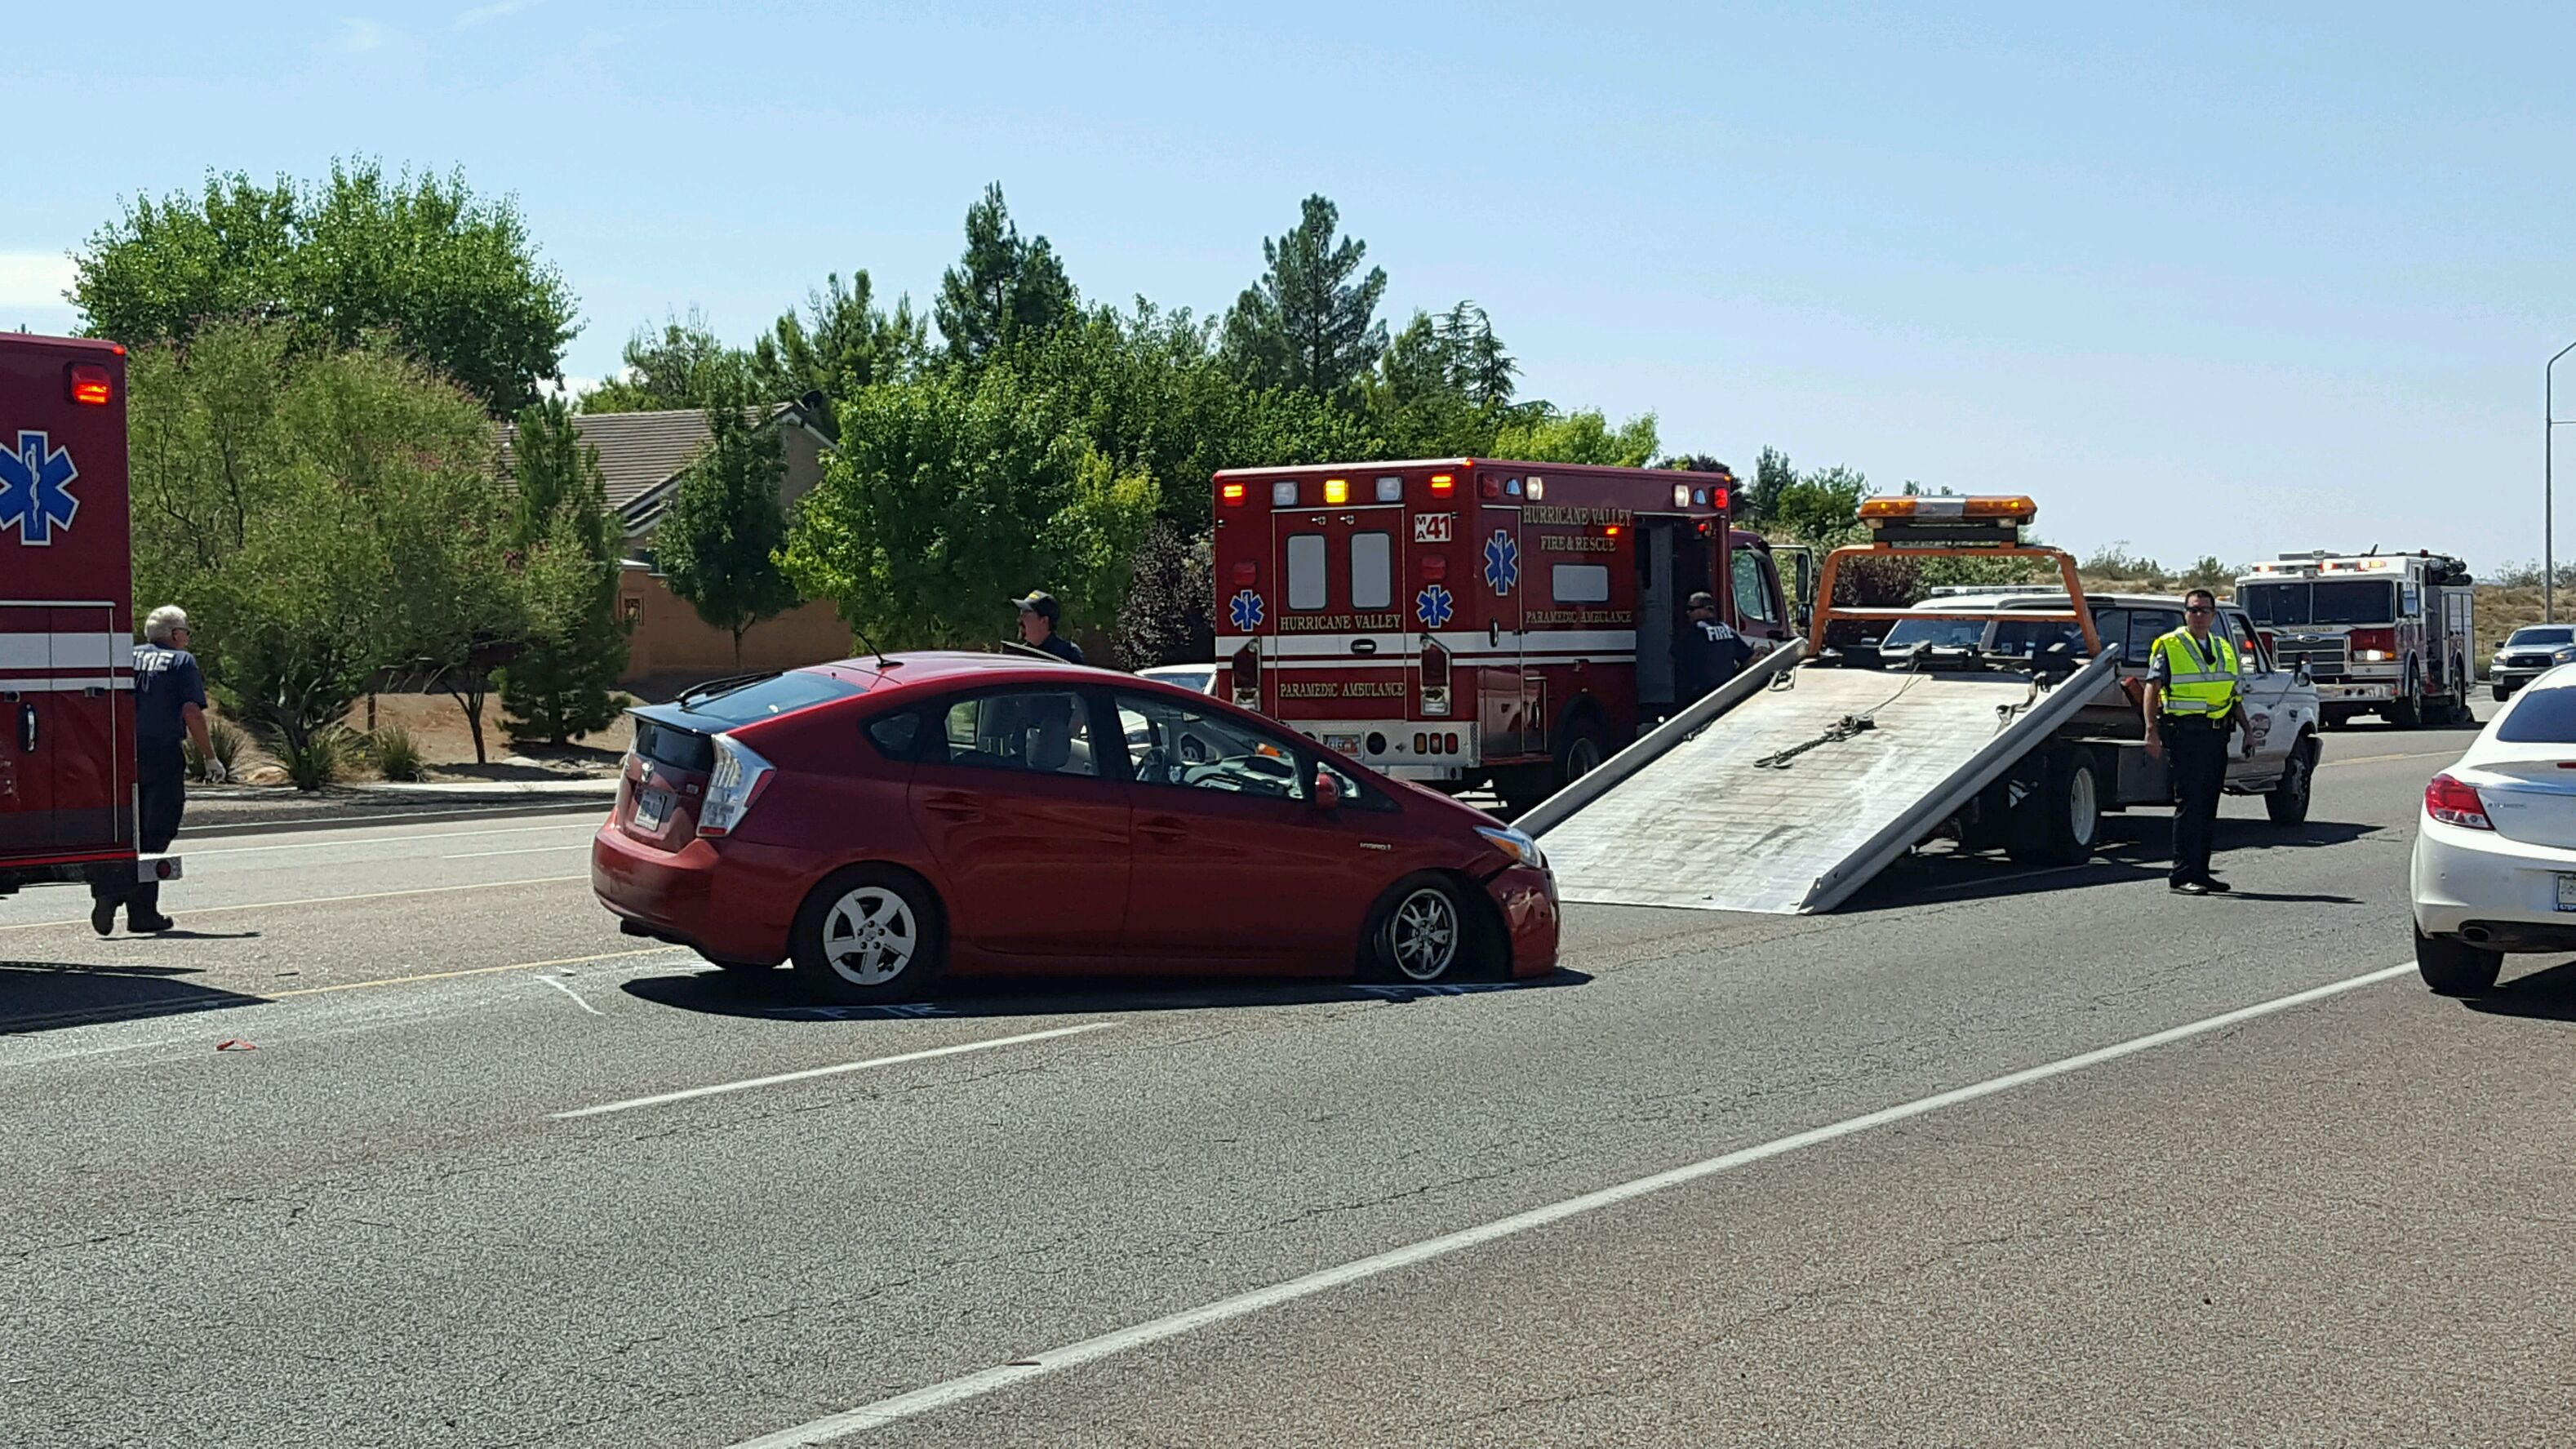 A Toyota Prius is readied to be pulled onto a tow truck after a wreck at 200 West State Street in Hurricane, Utah, Aug. 30, 2016 | Photo courtesy of Sgt. Brandon Buell, Hurricane City Police, St. George News